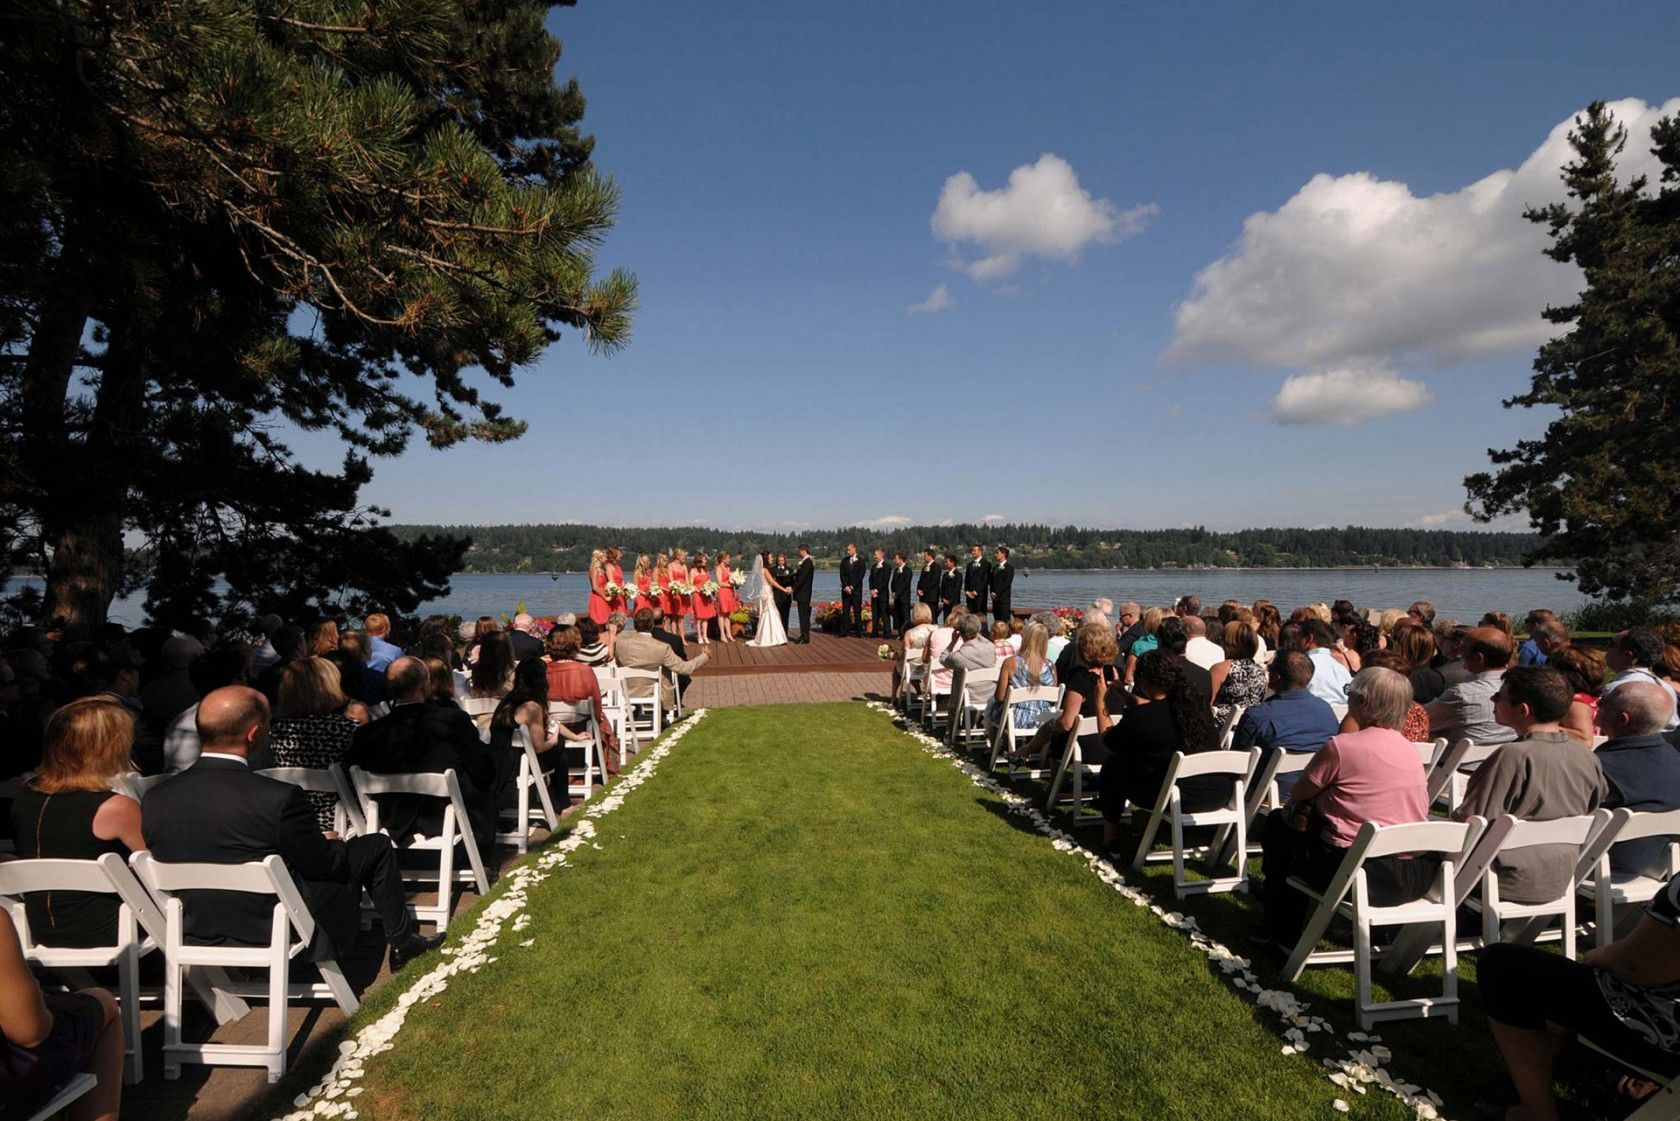 Gallery Kianalodge Wedding Venues Reception And Social Event Facilities Waterfront Events Washington Wedding Venues Seattle Wedding Venues